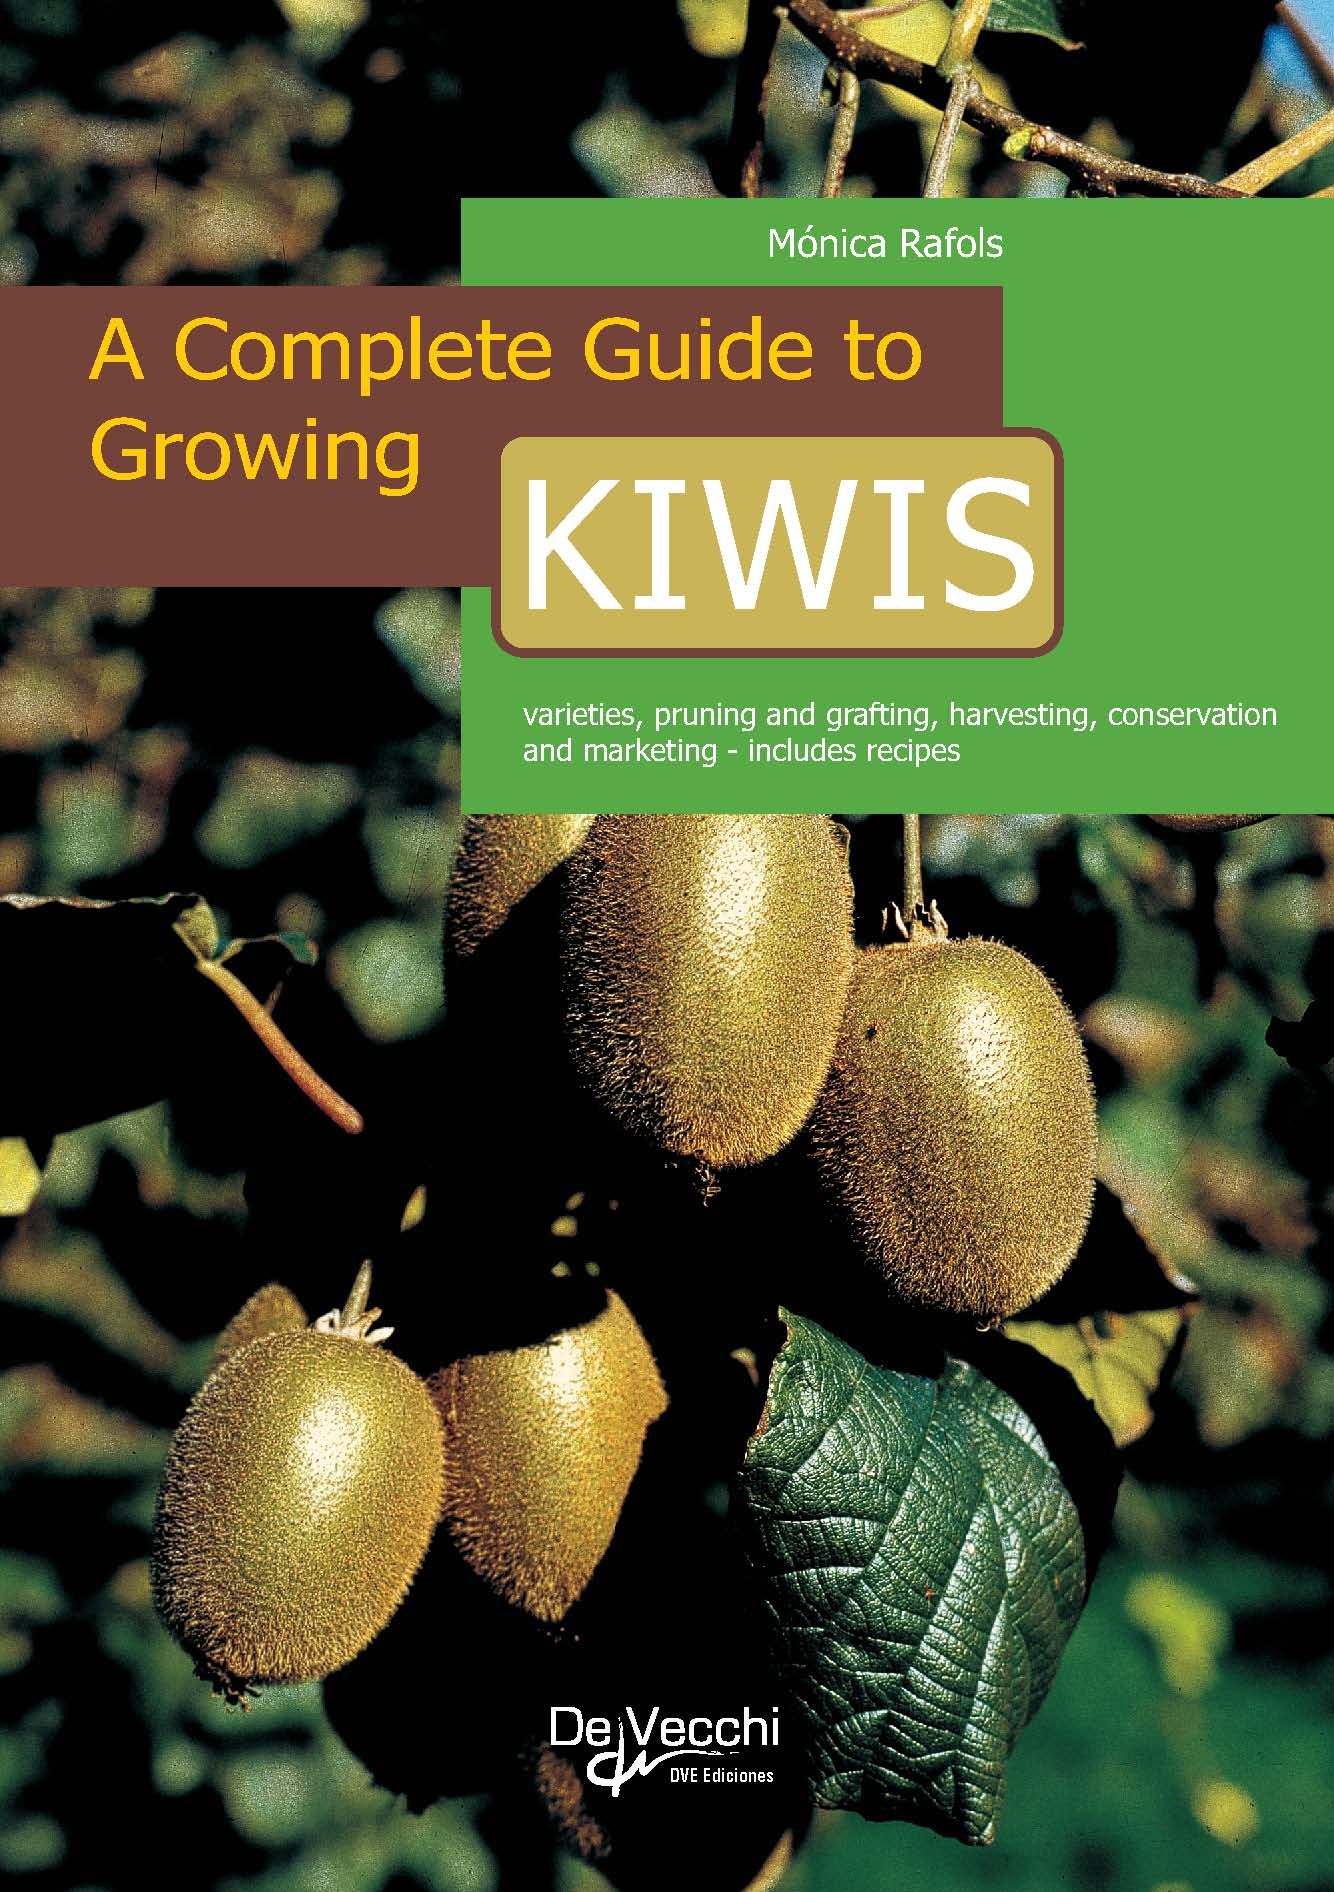 A COMPLETE GUIDE TO GROWING KIWIS